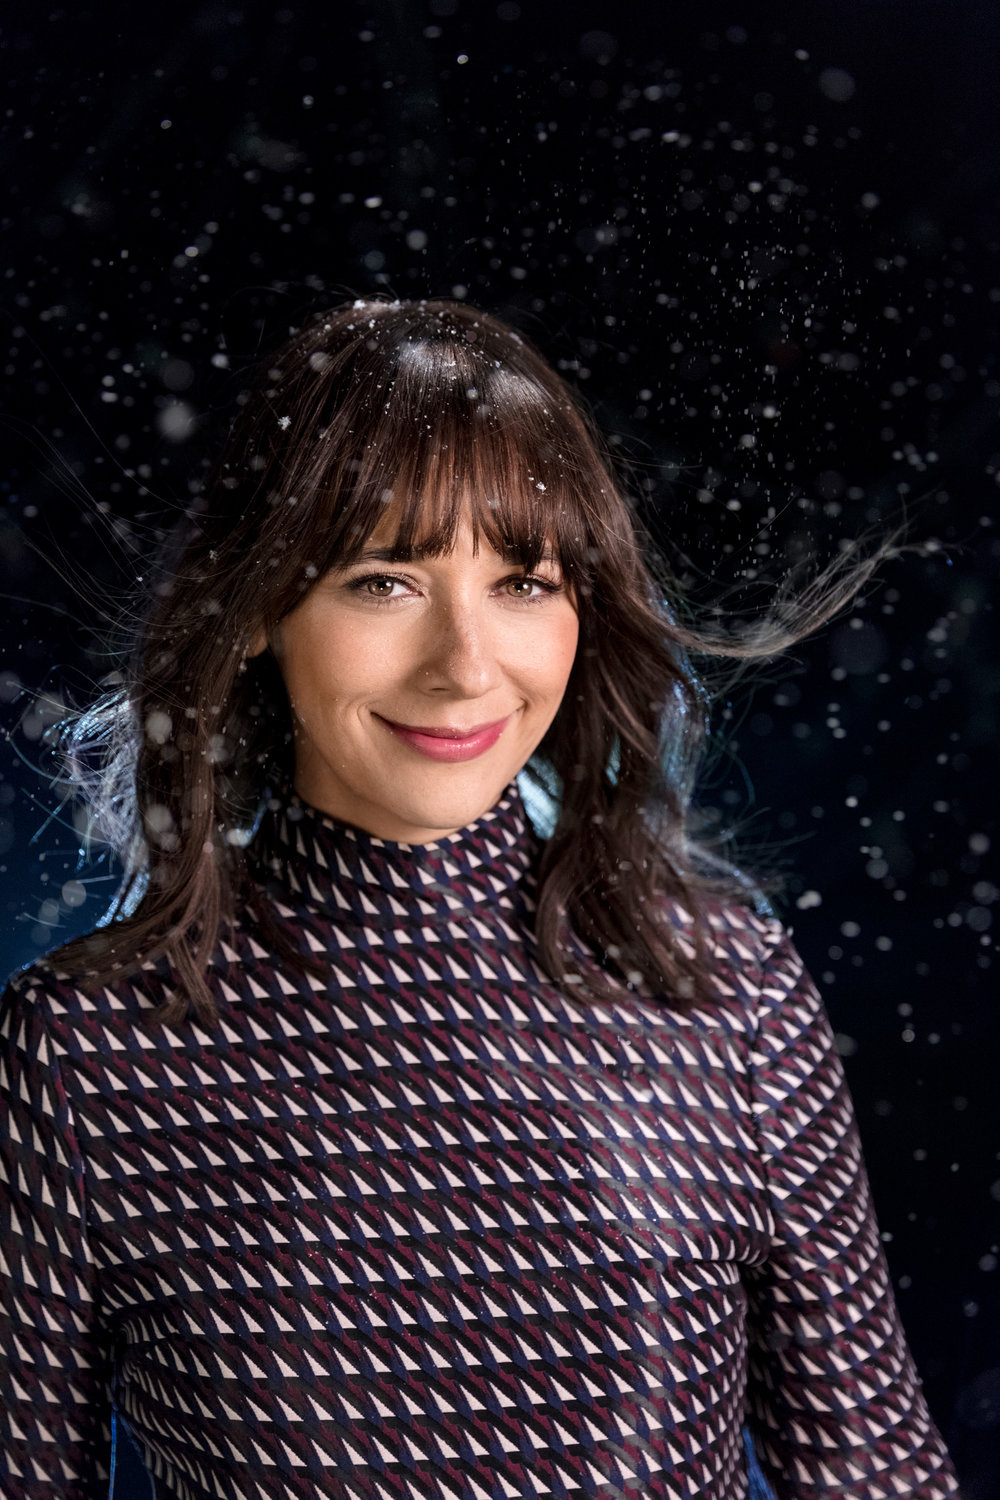 20170122_Esquire-Sundance_Rashida-Jones_0249.jpg